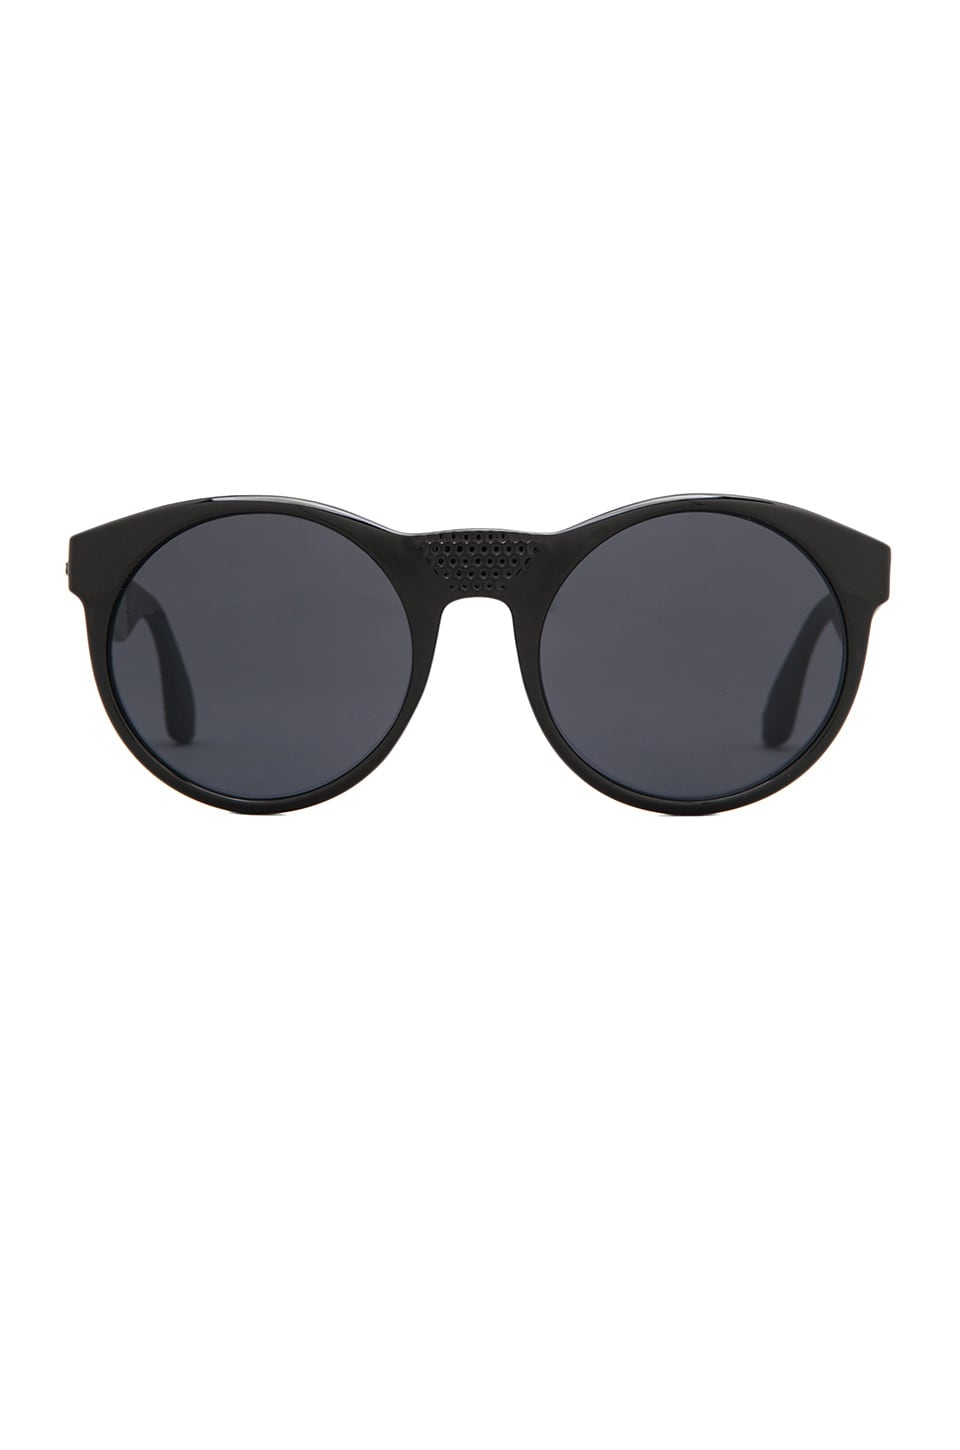 Le Specs Secret Society in Black/ Black Rubber/ Smoke Mono